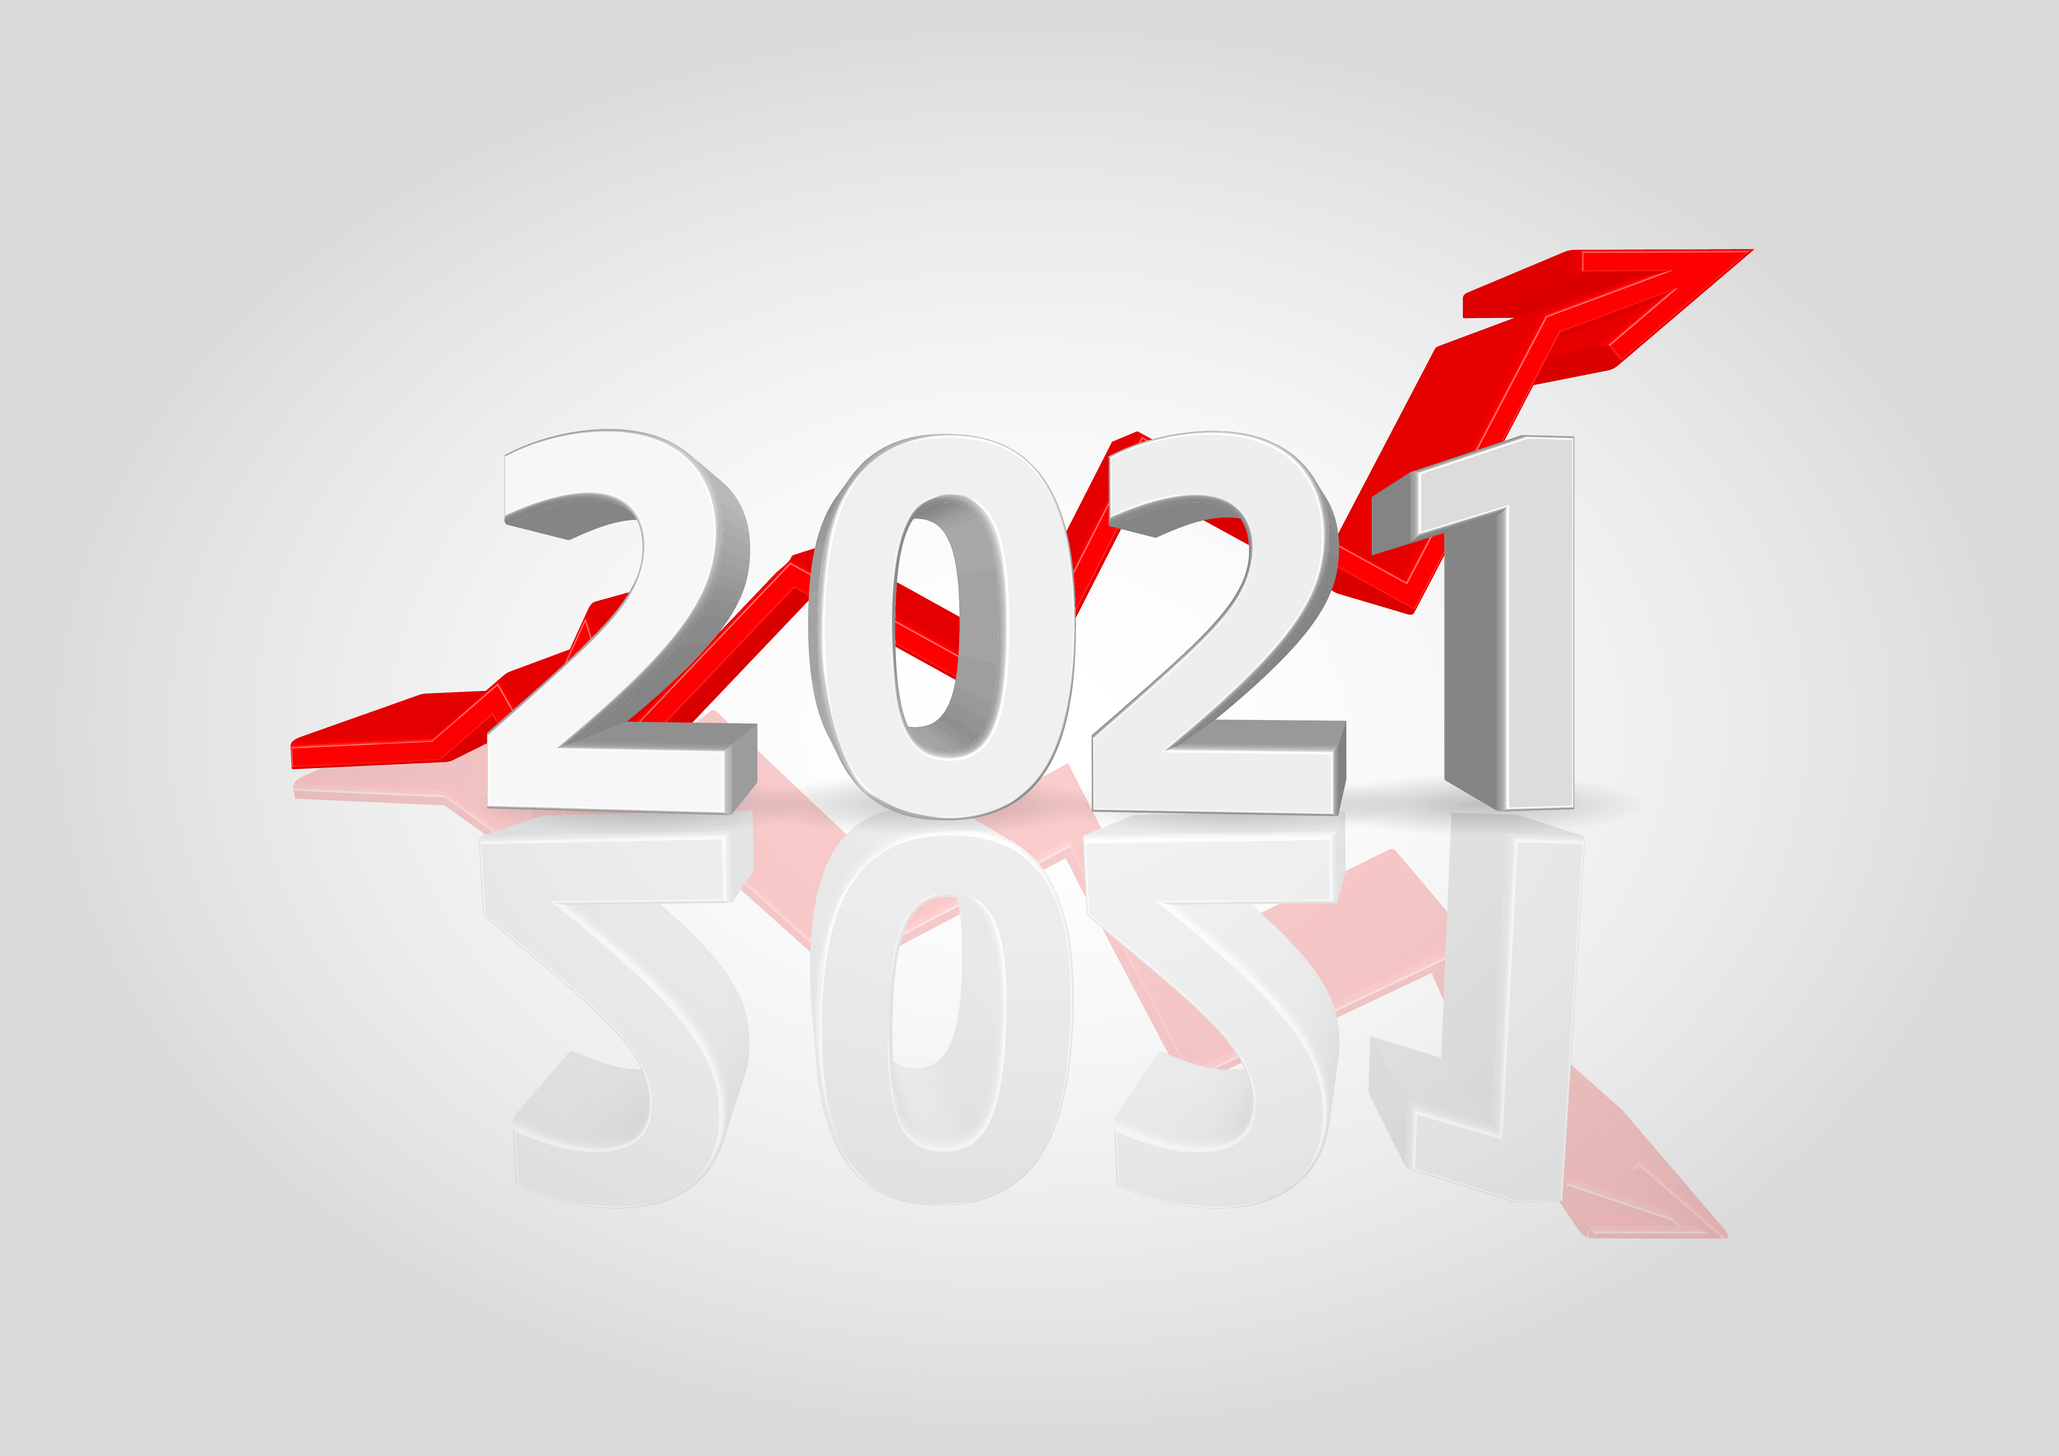 The New Year's card for 2021 - 3D three-dimensional numerals with rising arrows on a white background